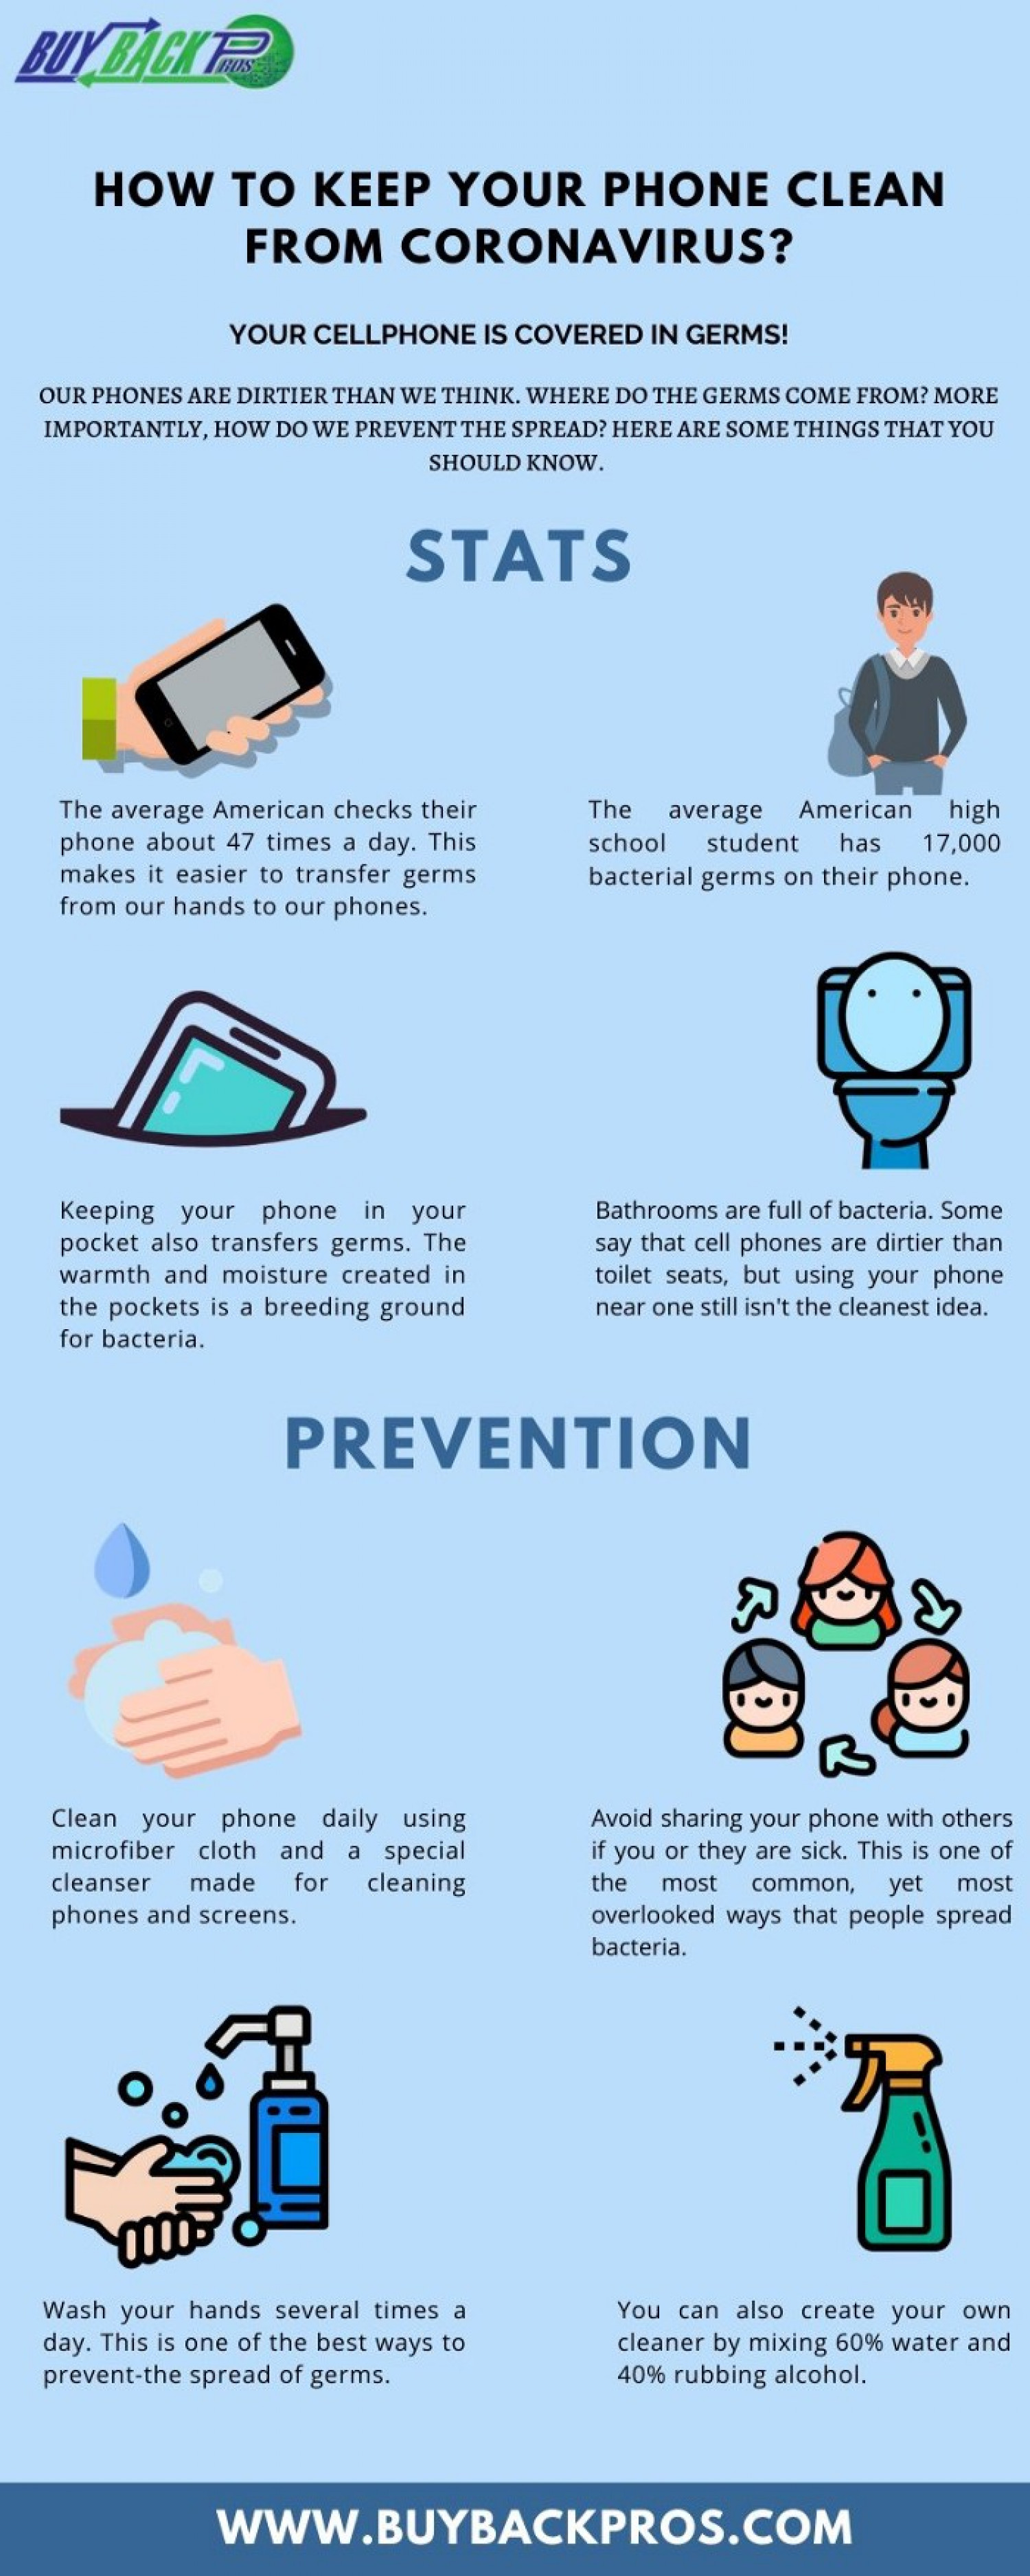 How to Keep Your Phone Clean from Coronavirus? Infographic